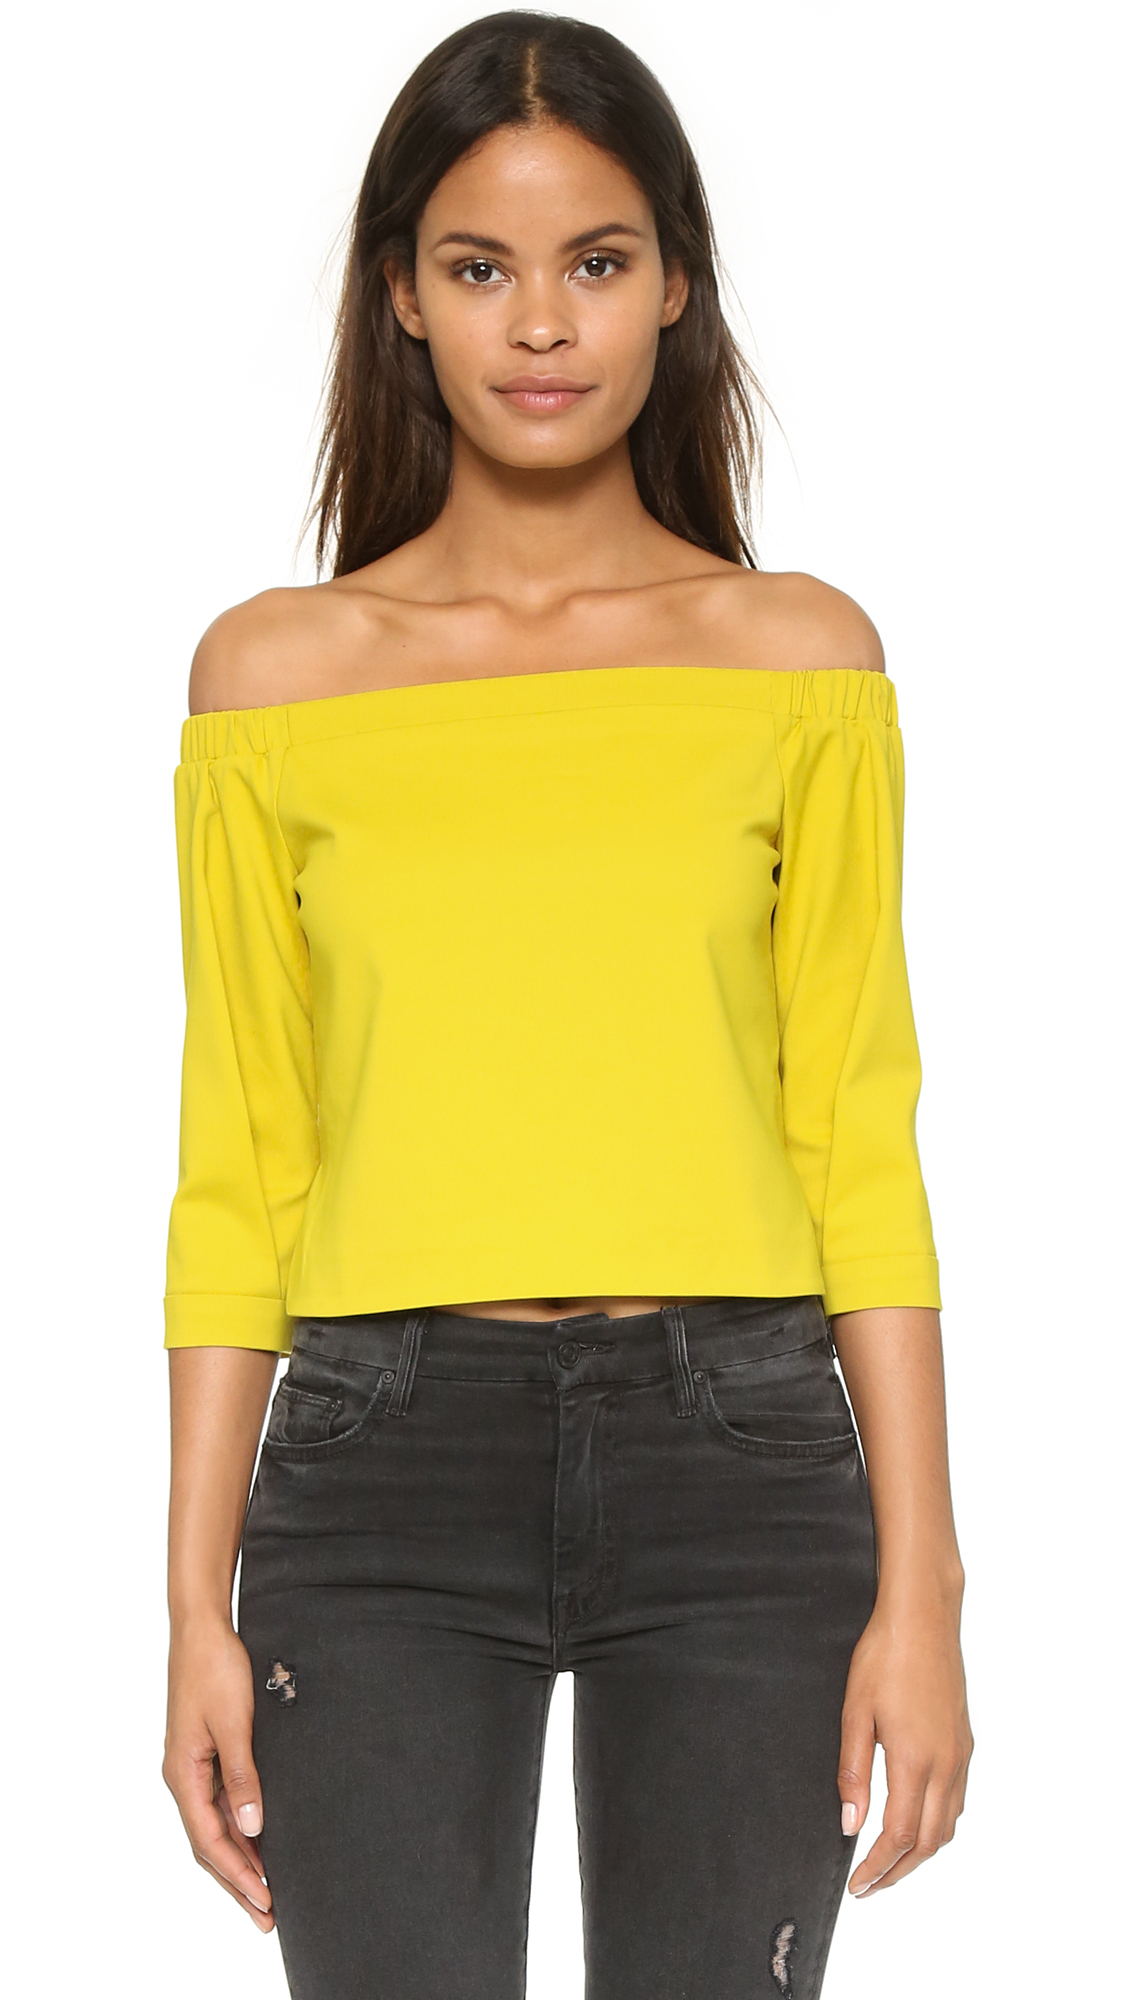 448755feae7 Tibi Off Shoulder Top - Nanook Navy in Yellow - Lyst